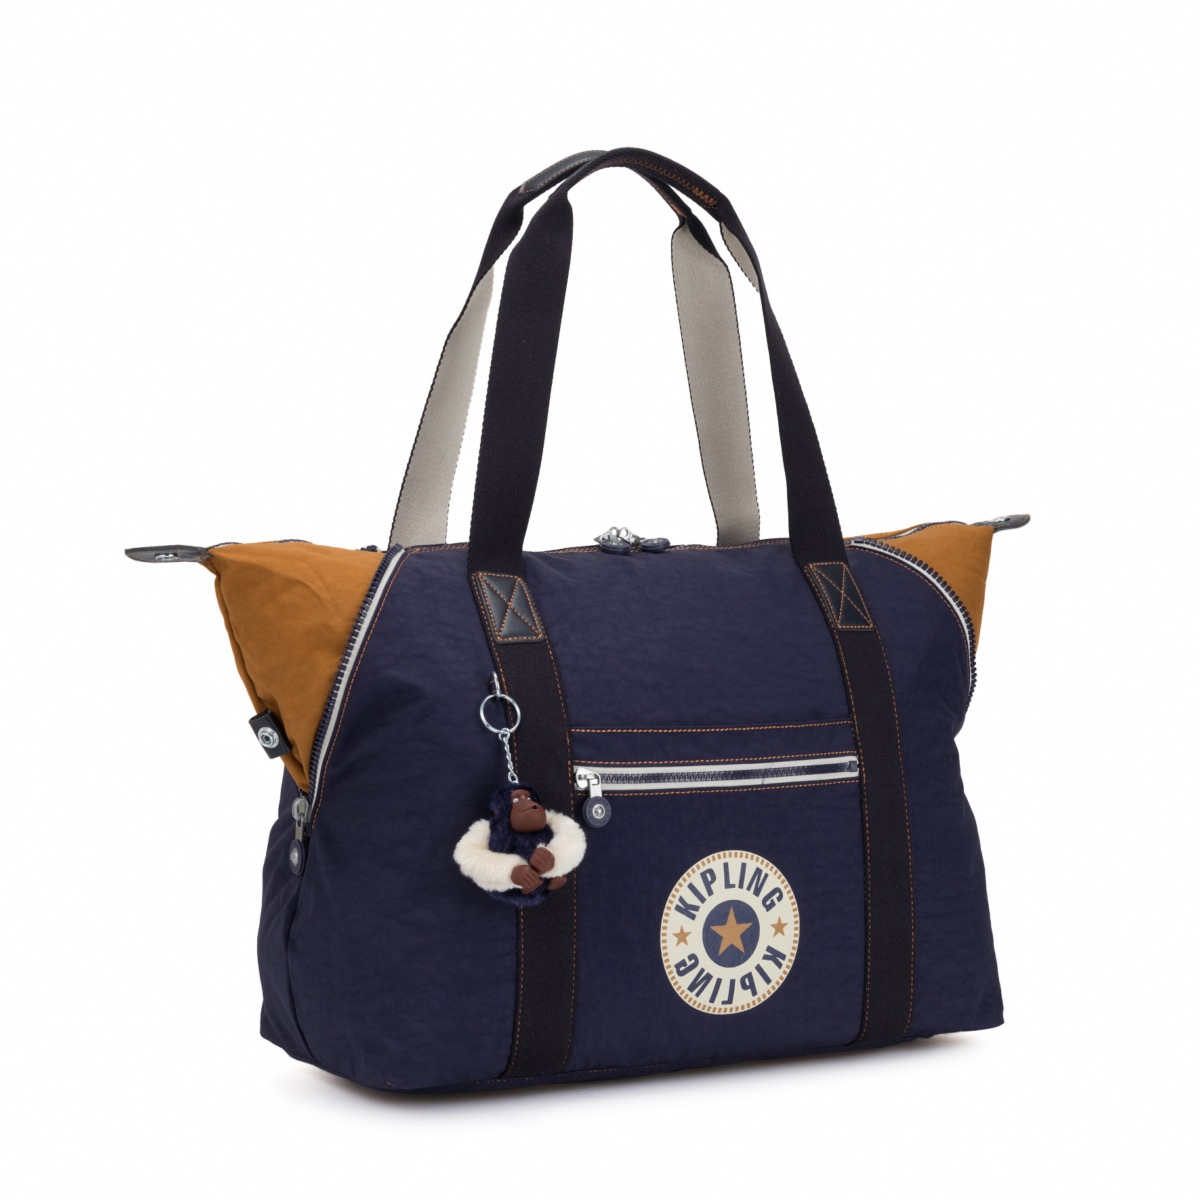 12c1c534a0 Kipling Art M Medium Travel Tote. The Art M is a fantastic medium-sized travel  bag that is very versatility. There are unique zips that allow the bag to  be ...